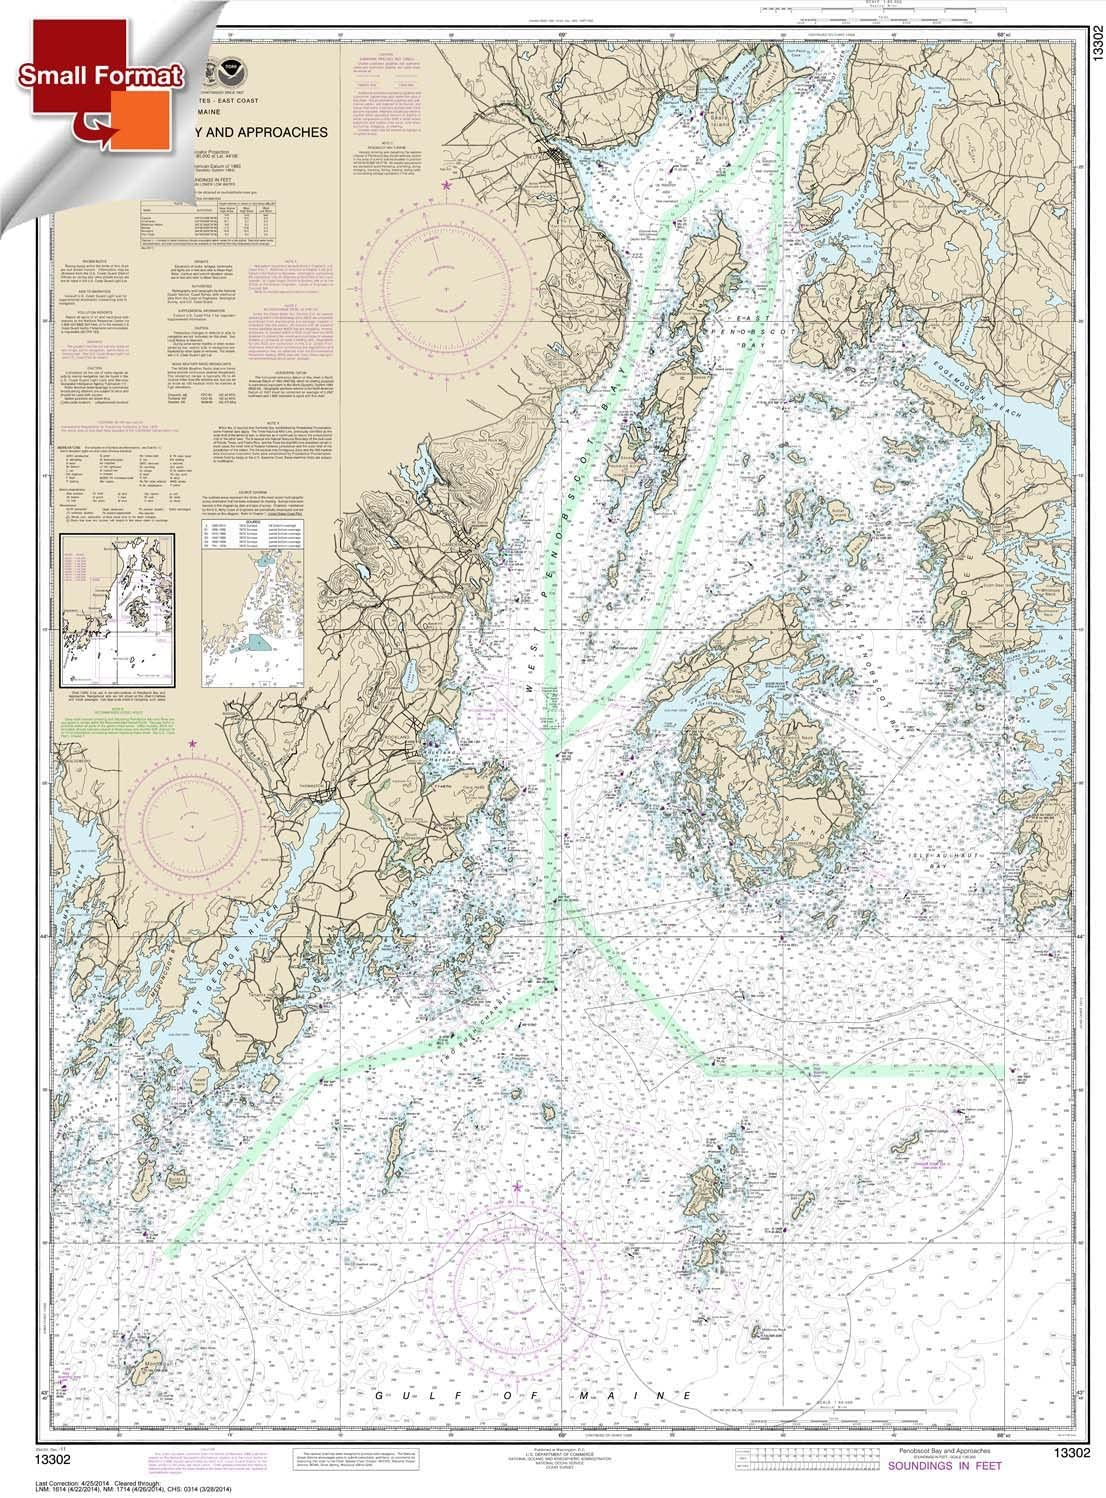 SMALL FORMAT WATERPROOF Penobscot Bay and Approaches 21.00 x 27.90 Paradise Cay Publications NOAA Chart 13302